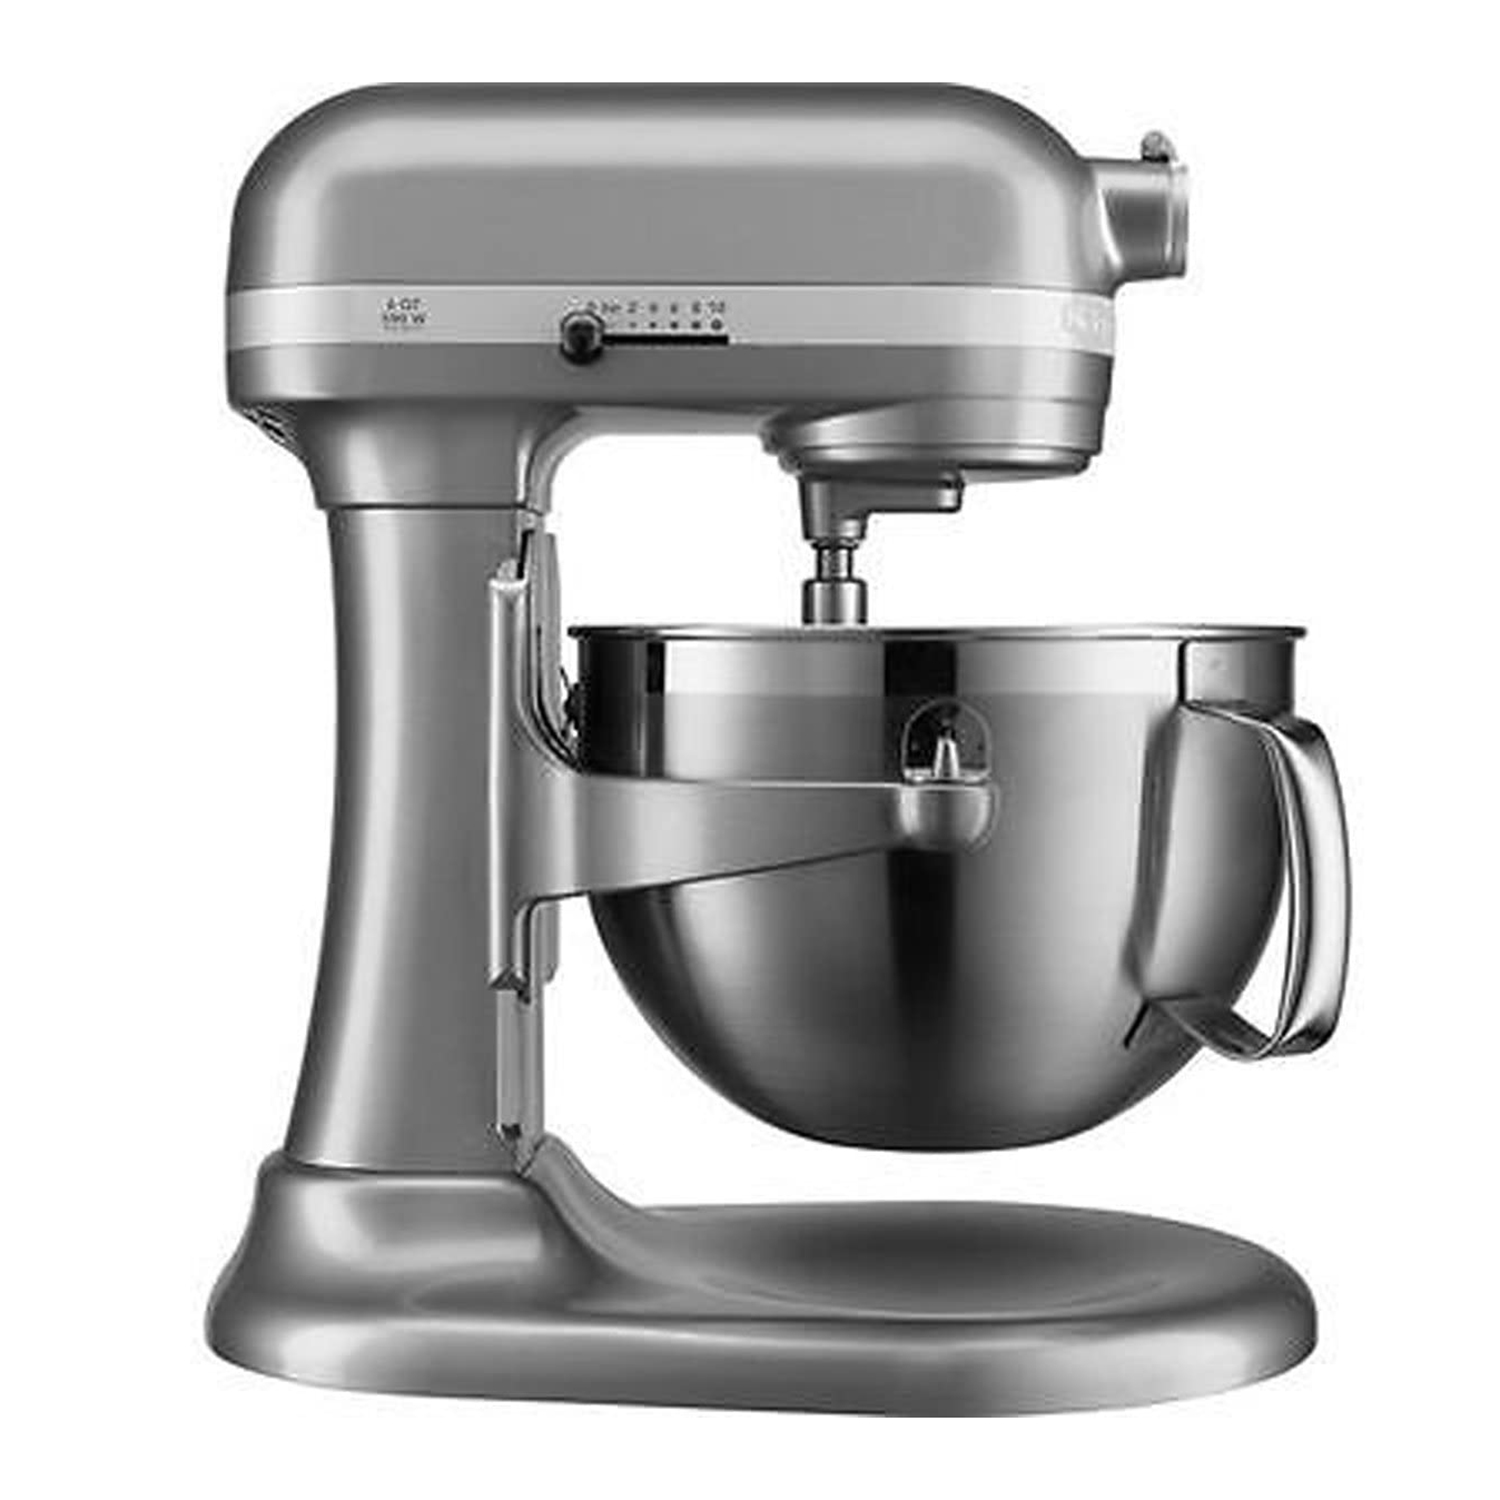 KitchenAid 6 quart Bowl-Lift Professional Stand Mixer